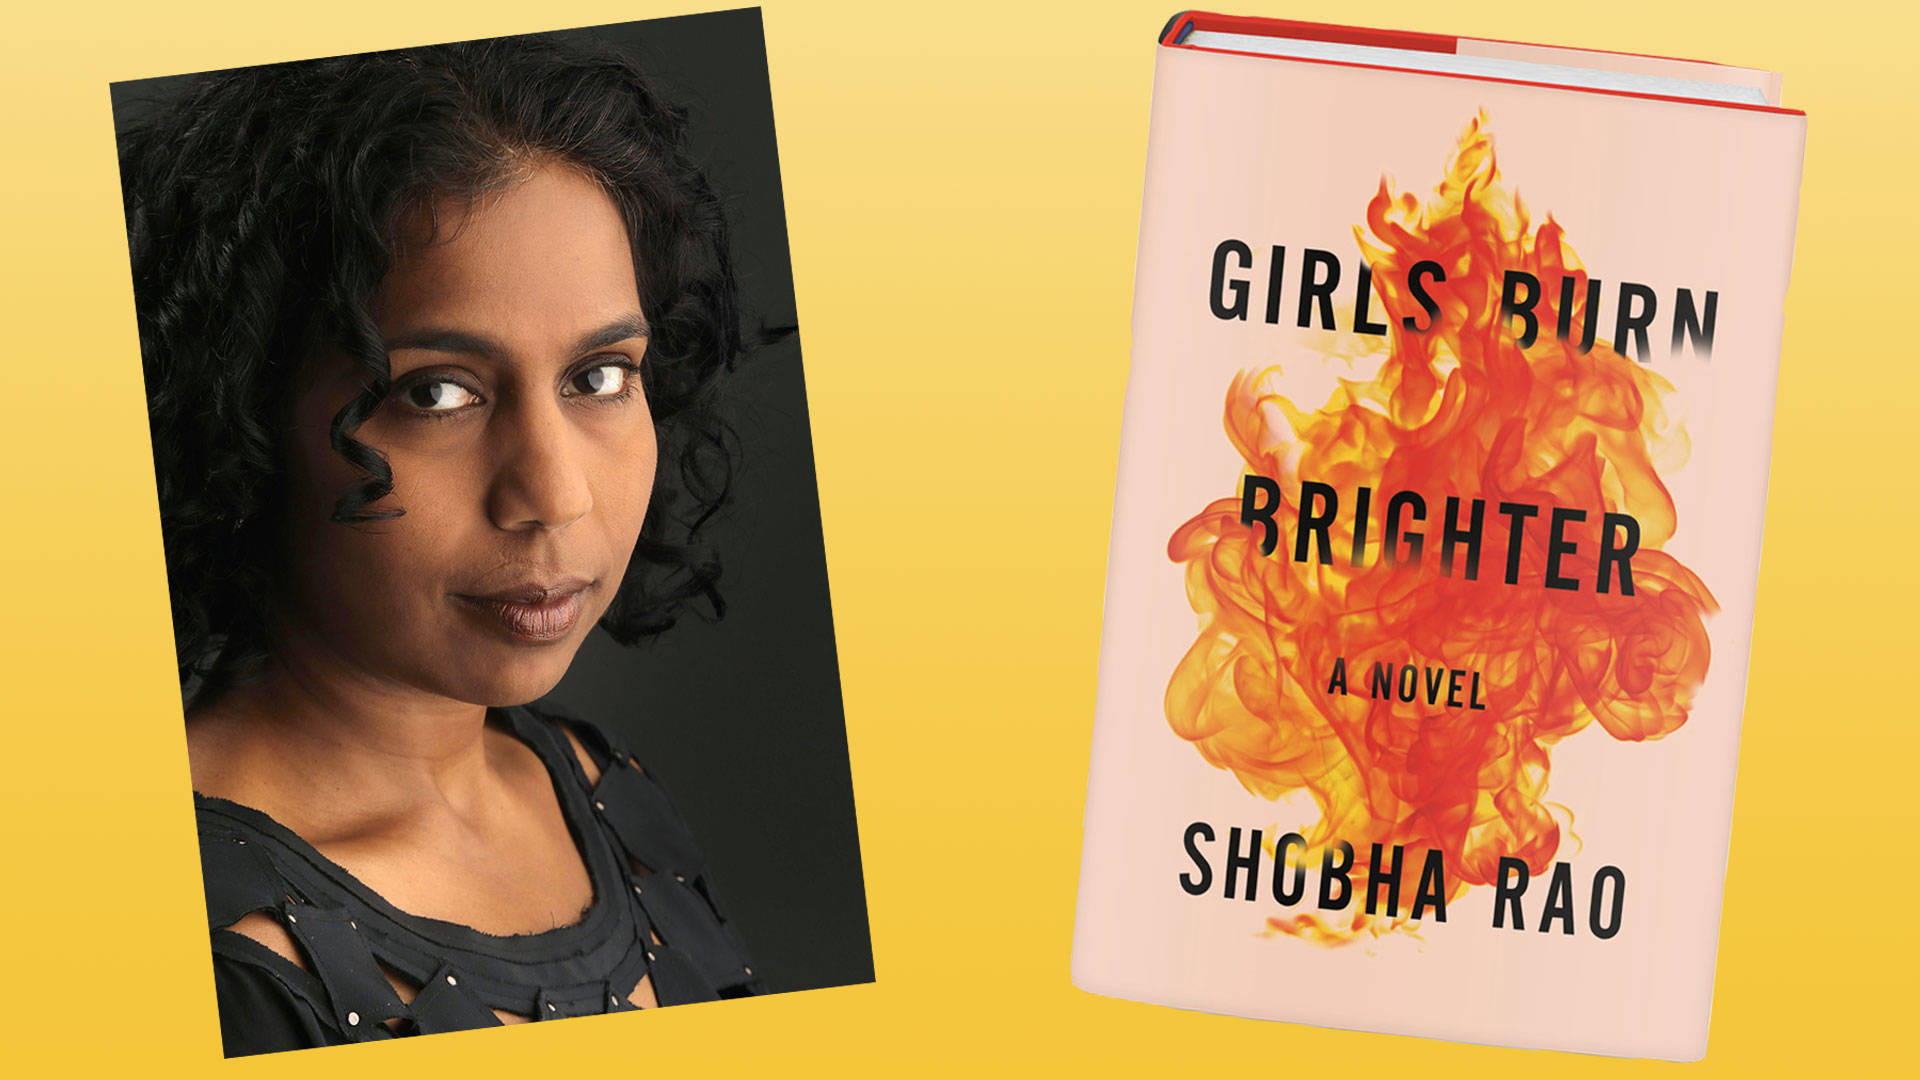 Shobha Rao's 'Girls Burn Brighter' is about the strength of young female friendship in the face of a patriarchal society.